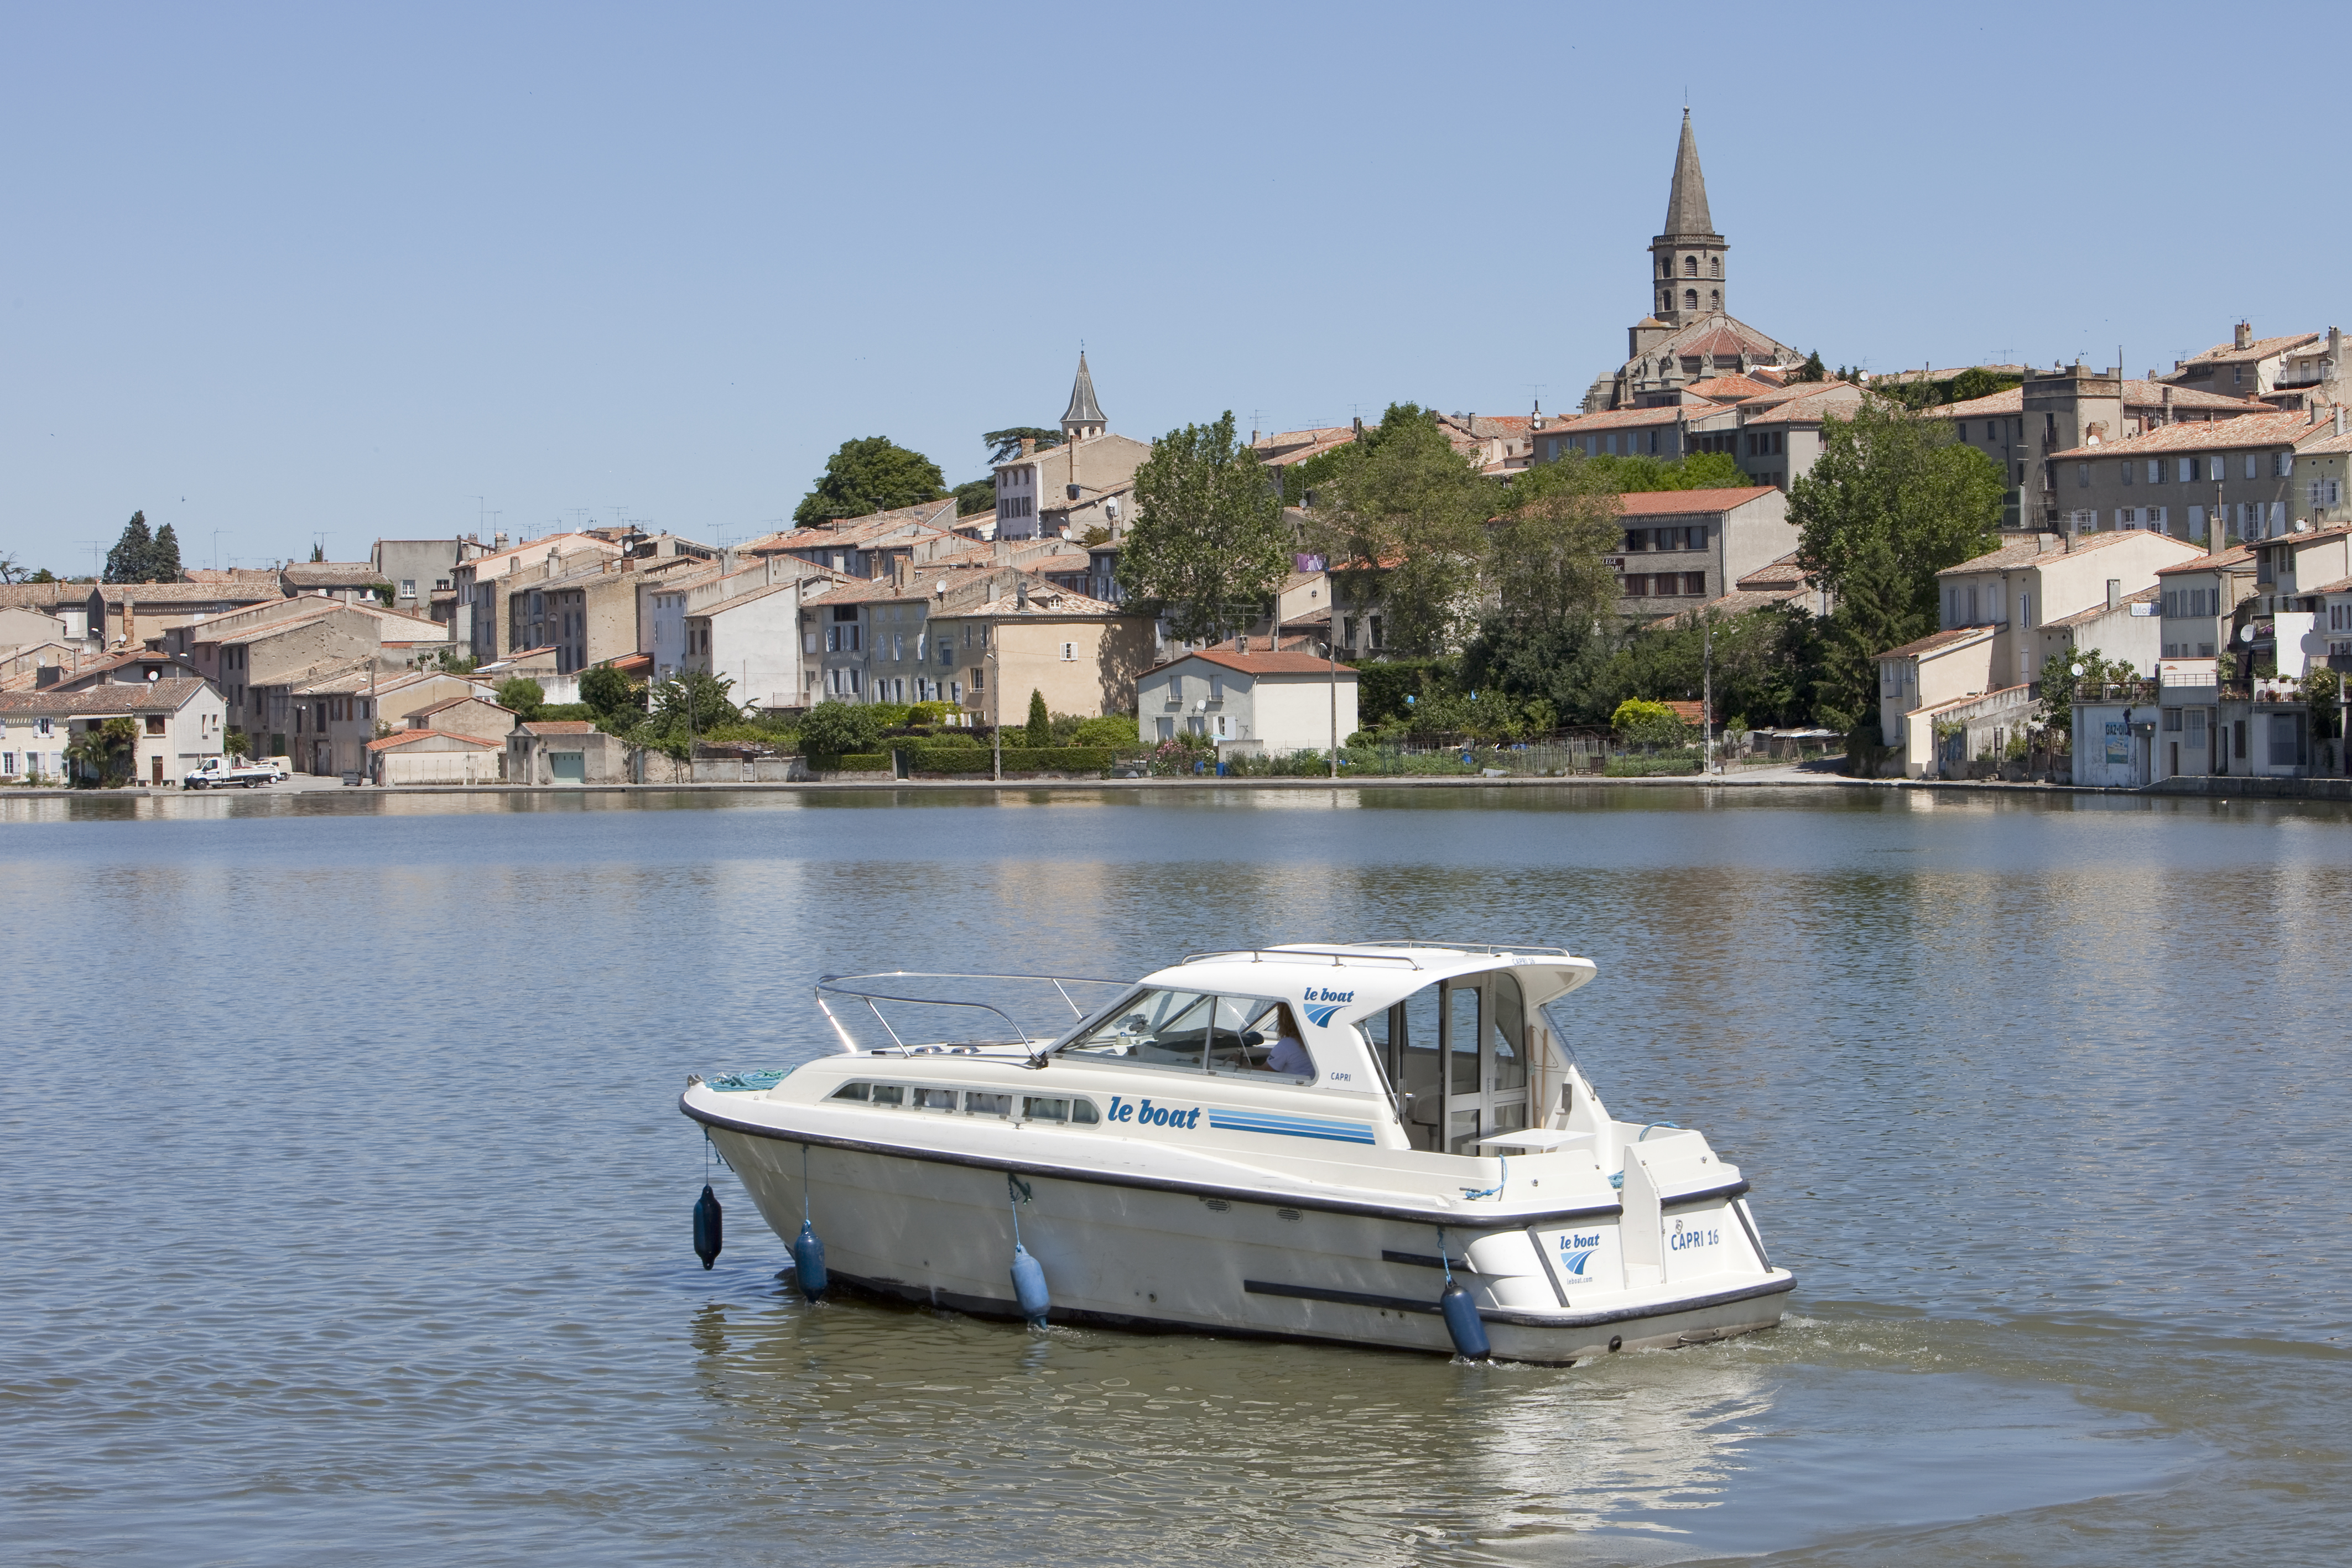 Castelnaudary (Le Boat)